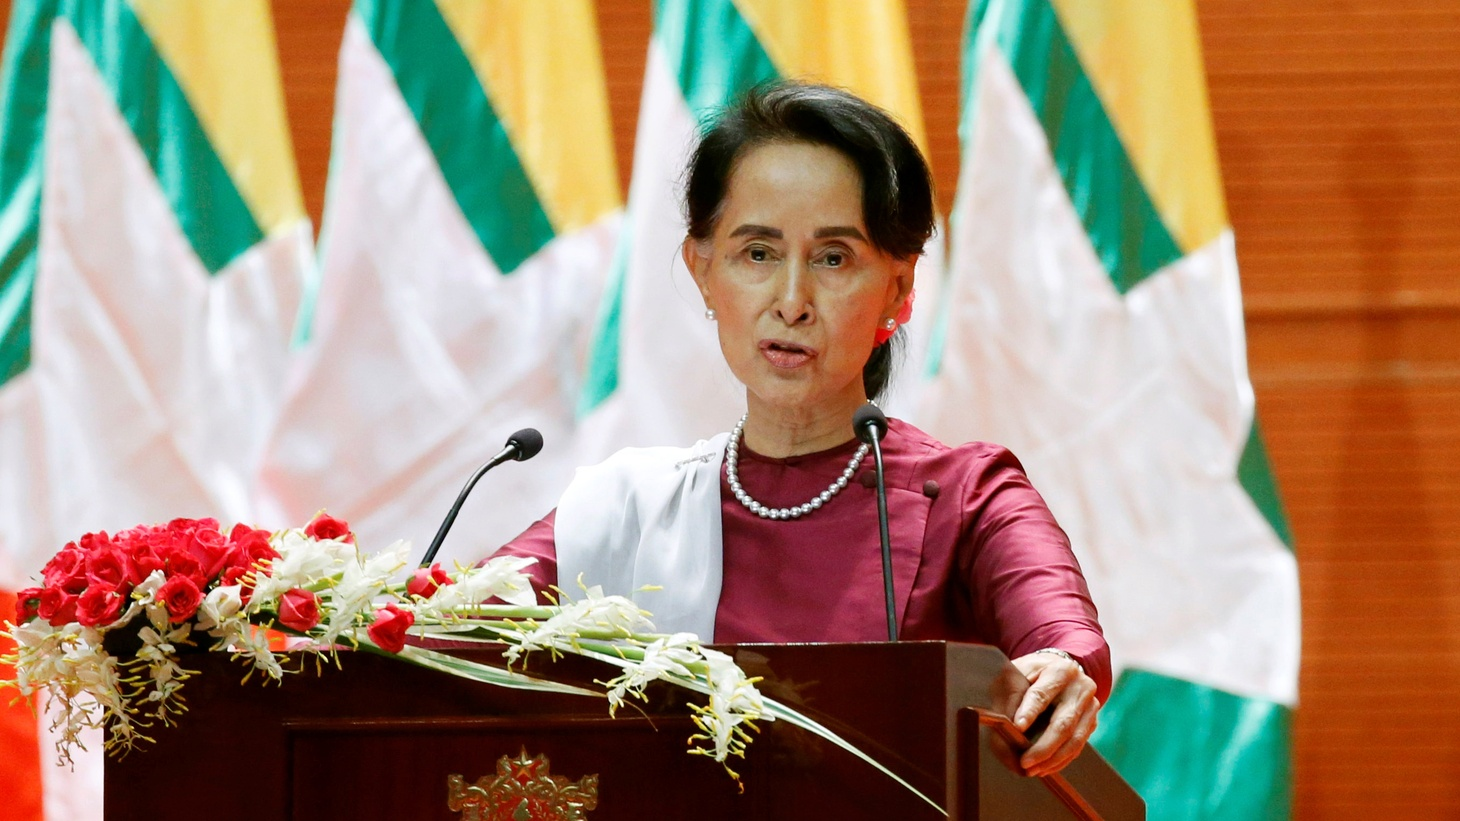 Former supporters of Aung San Suu Kyi, the elected leader of Myanmar, are demanding that she give up her Nobel Peace Prize. She's been silent about vicious atrocities committed by the military in her Buddhist-majority country. We get the background of a humanitarian crisis that's not as simple as it looks.